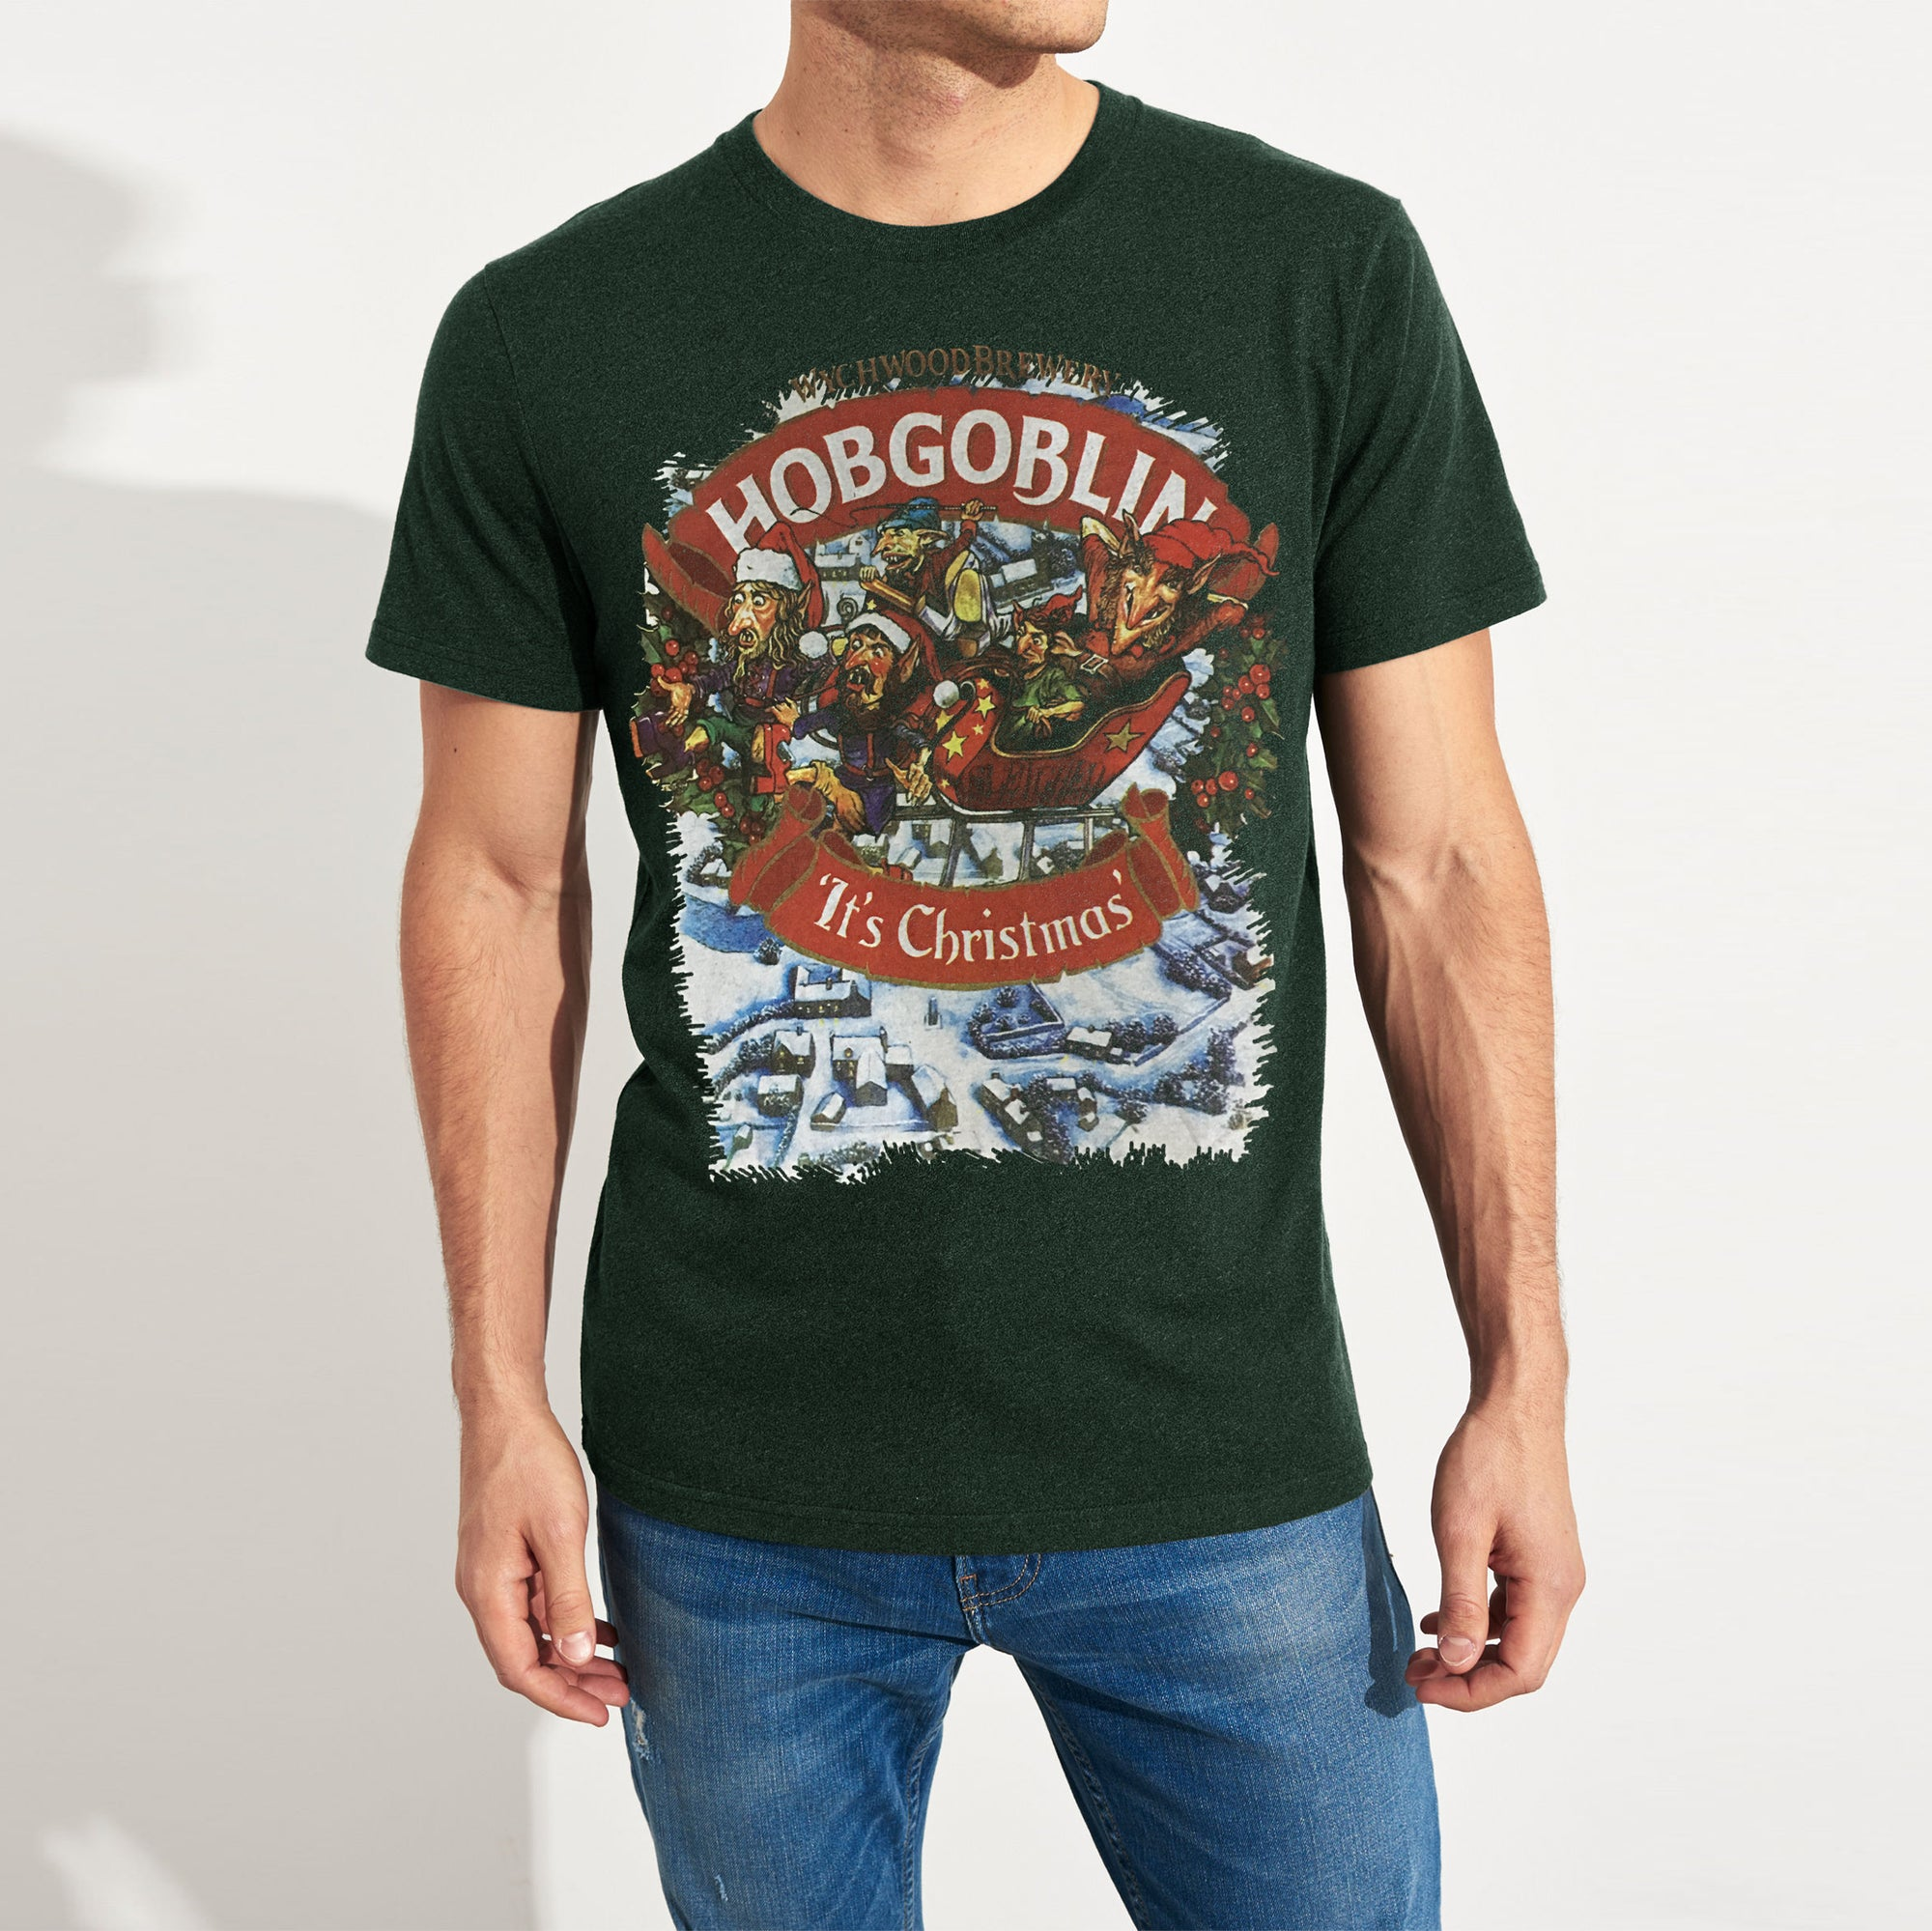 brandsego - Wychwood Crew Neck Single Jersey Tee Shirt For Men-Green Melange-NA8626